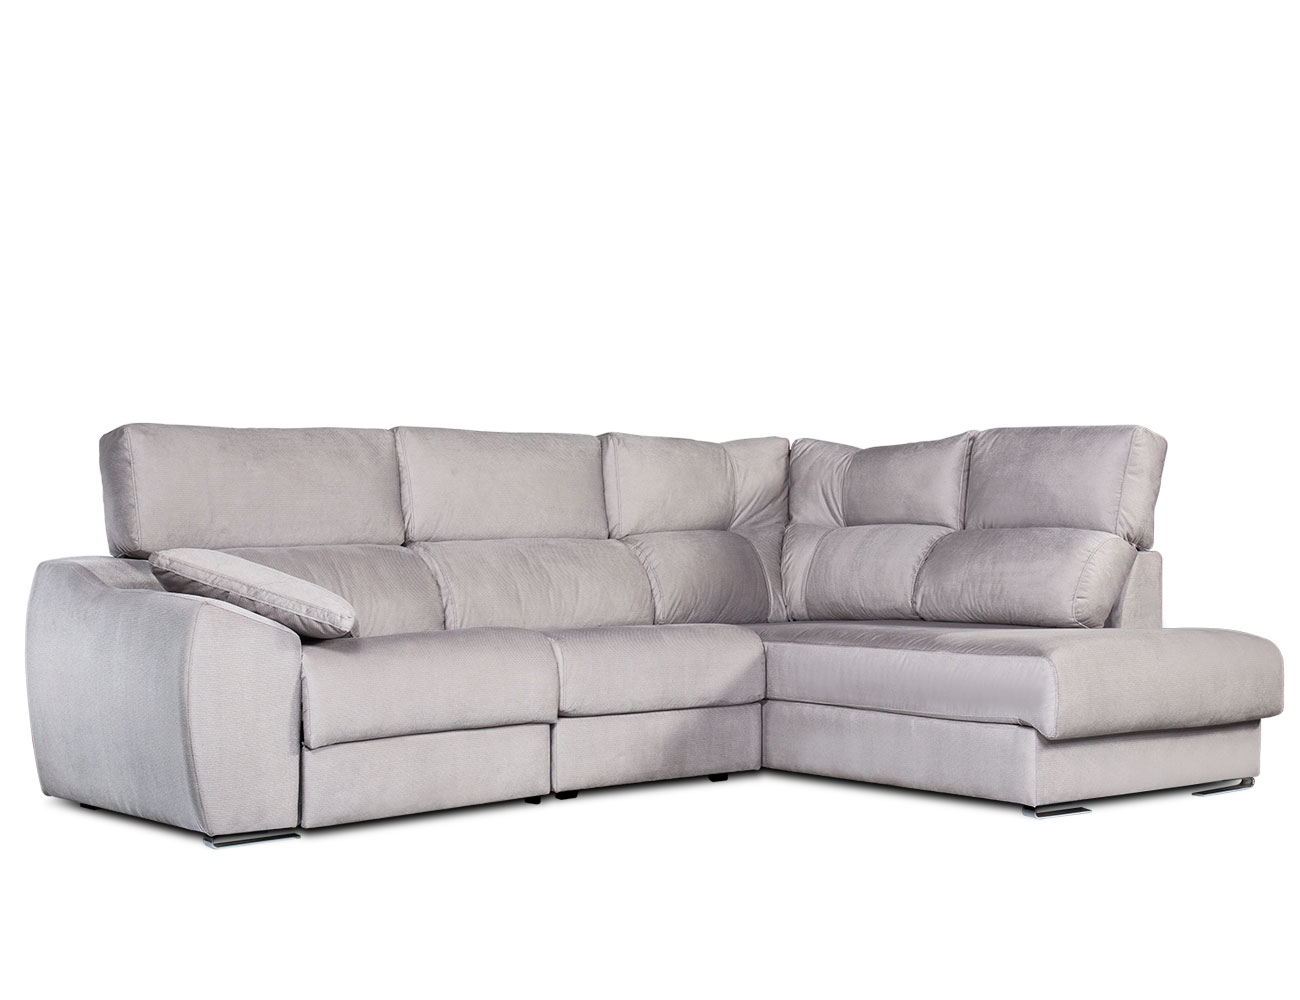 Sofa chaiselongue rincon electrico5